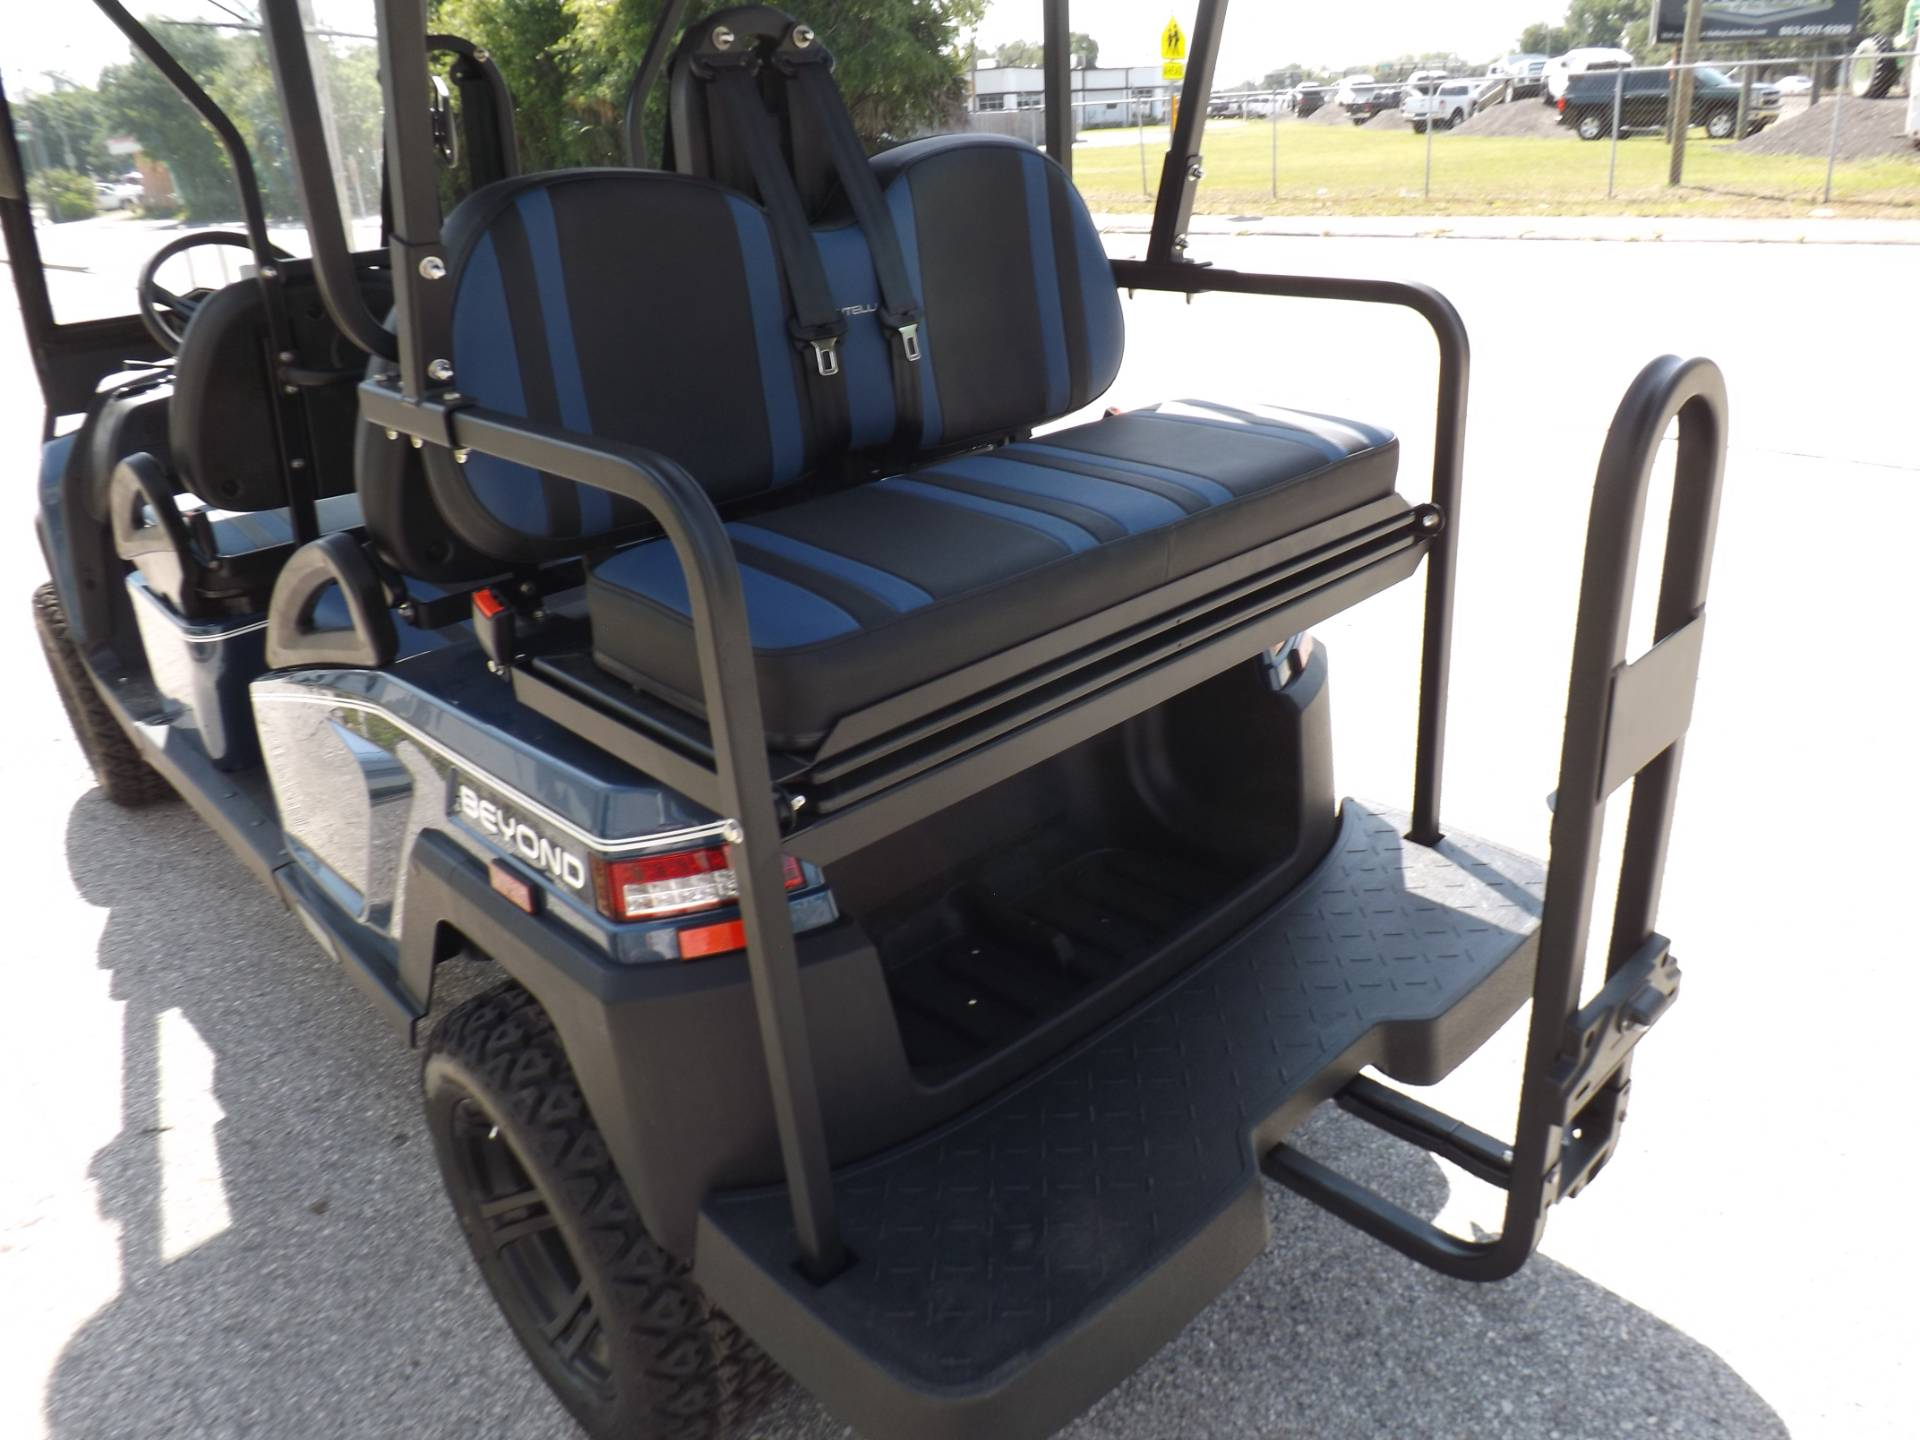 2021 Bintelli BEYOND 6P LIFTED STREET LEGAL GOLF CART in Lakeland, Florida - Photo 18